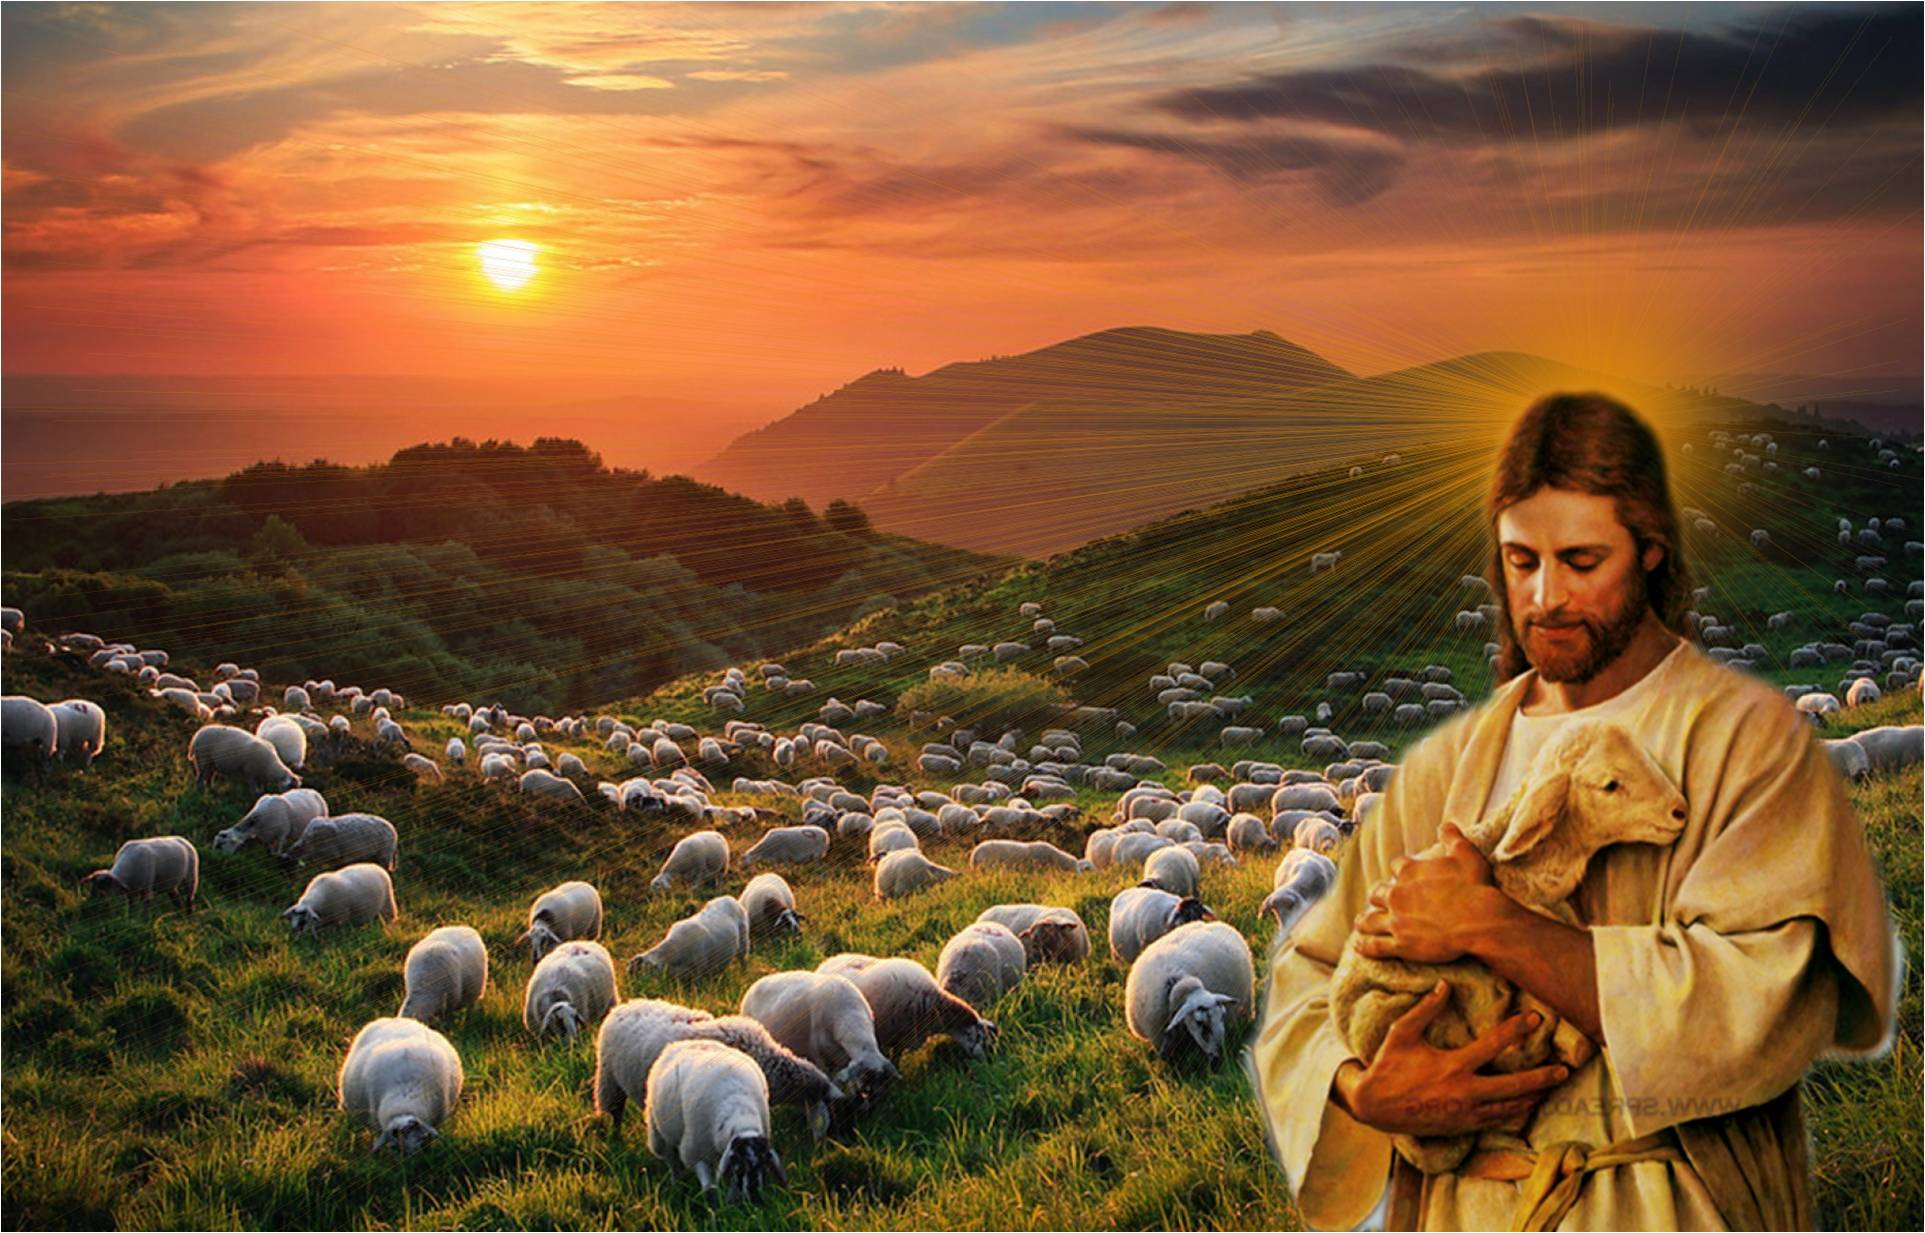 jesus-christ-is-my-shepherd-desktop-background-602539.jpg